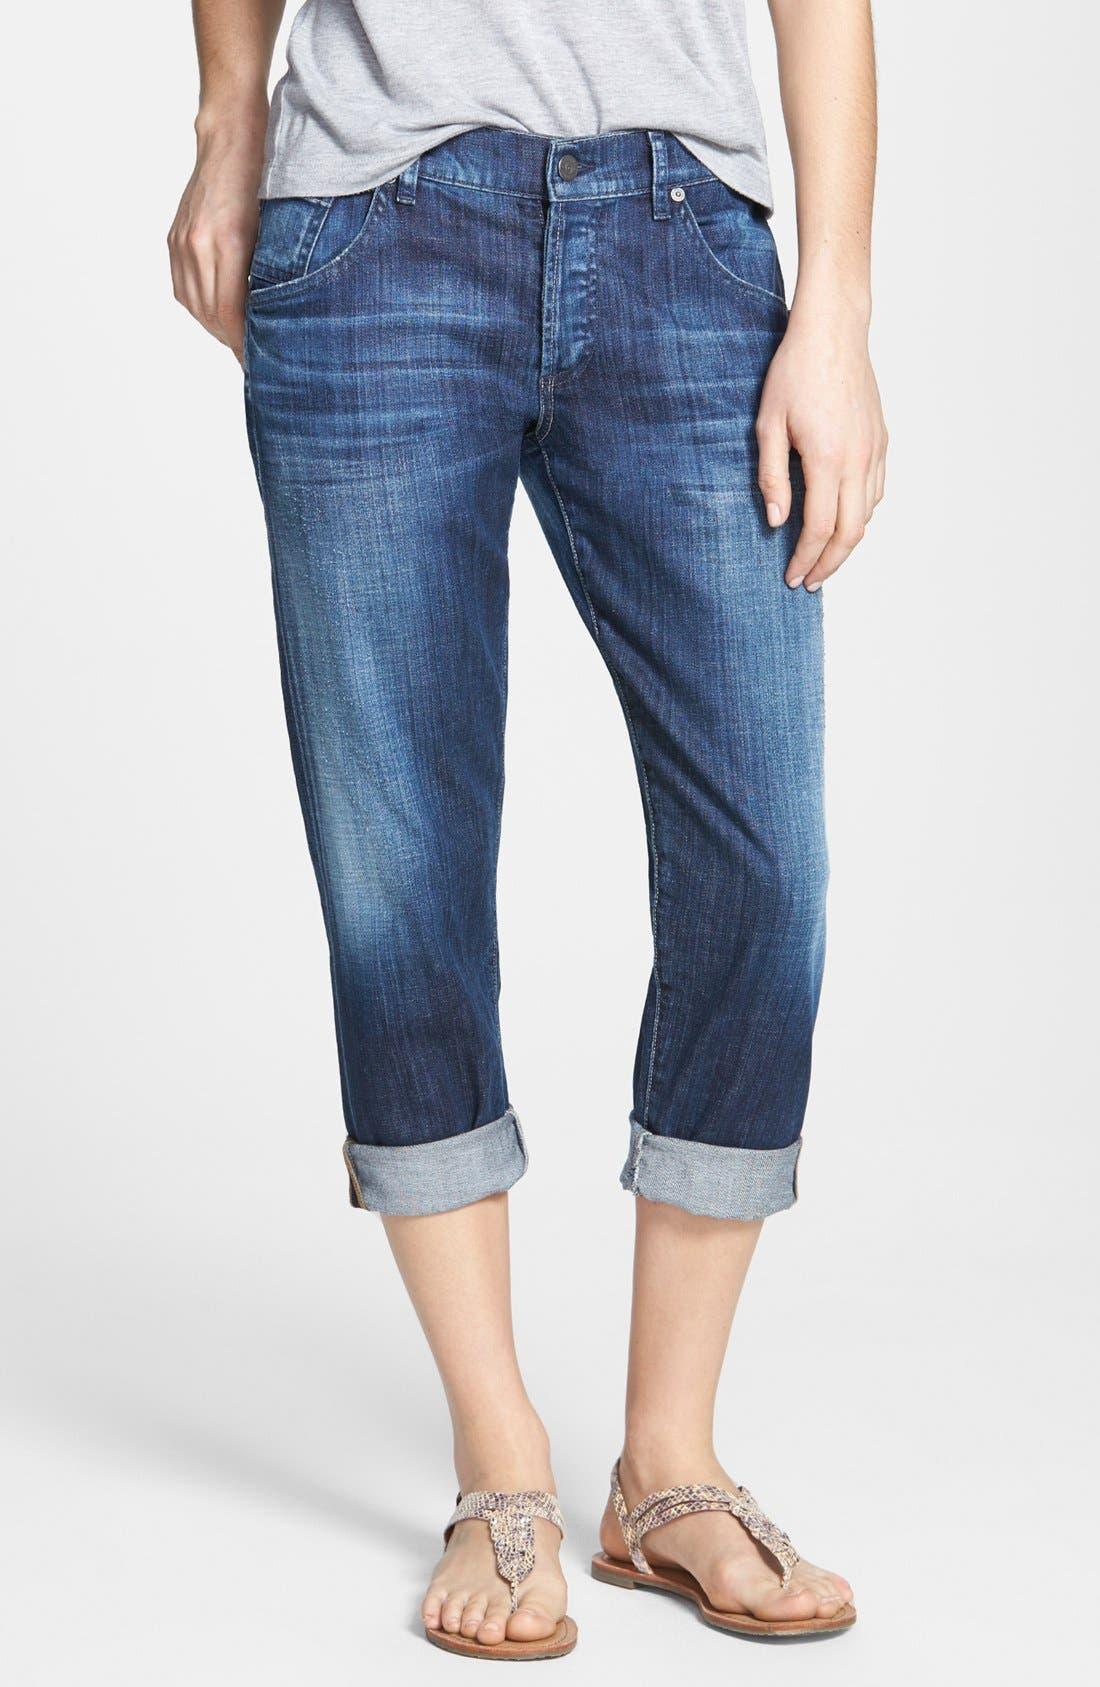 'Skyler' Crop Boyfriend Jeans,                             Main thumbnail 1, color,                             Vista